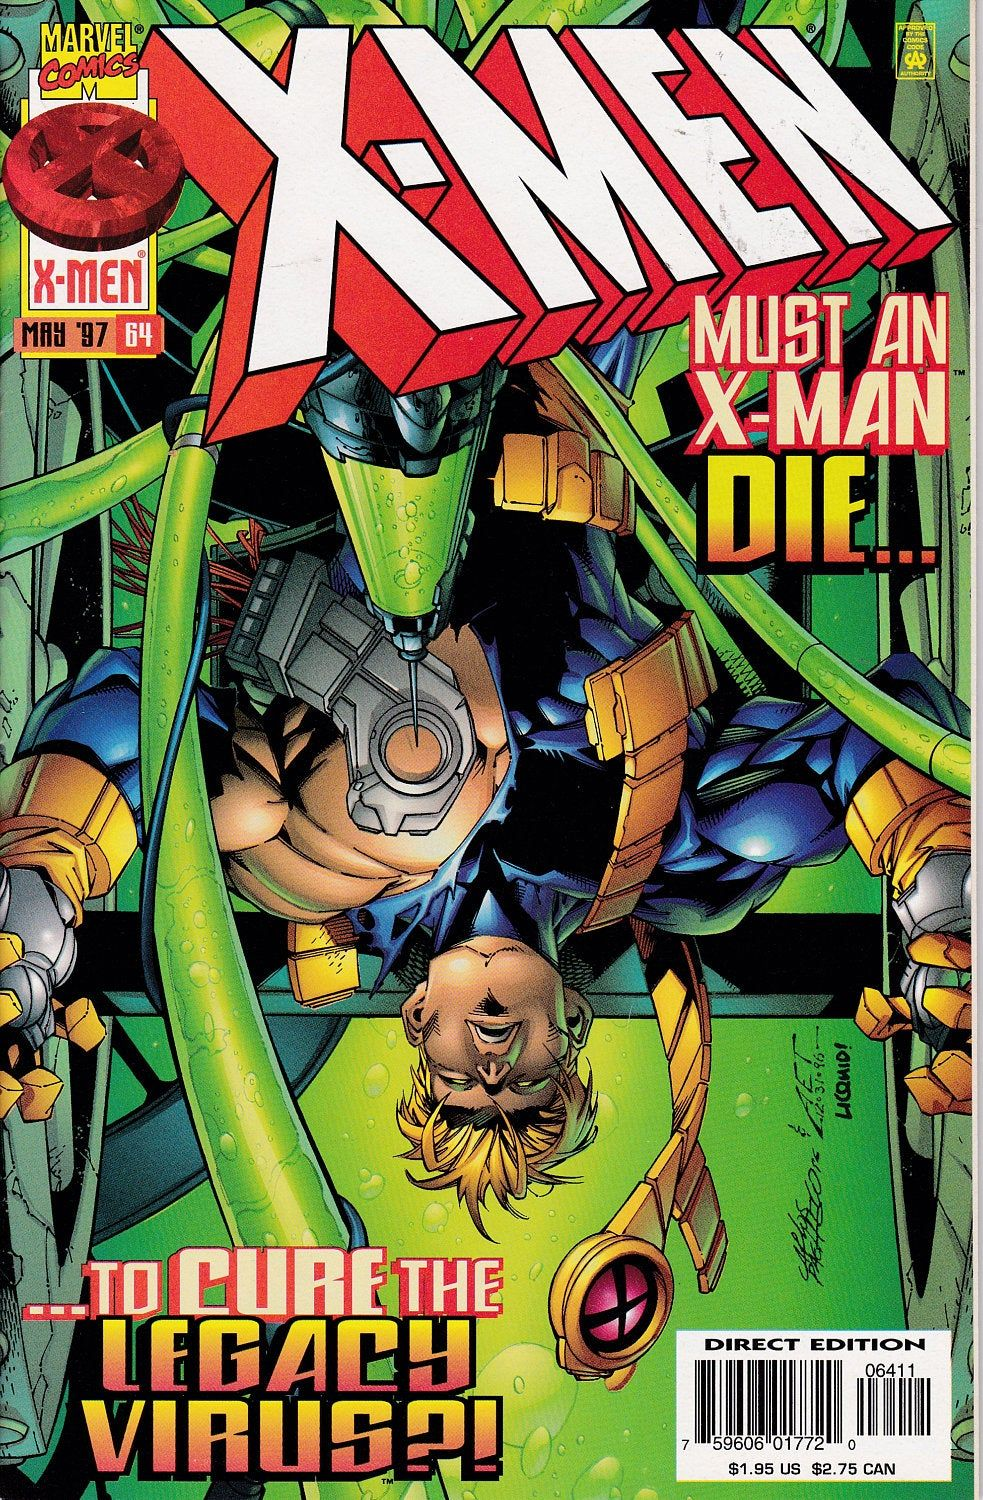 X Men 64 May 1997 Marvel Comics Grade Nm Etsy In 2020 X Men Marvel Comics Xmen Comics